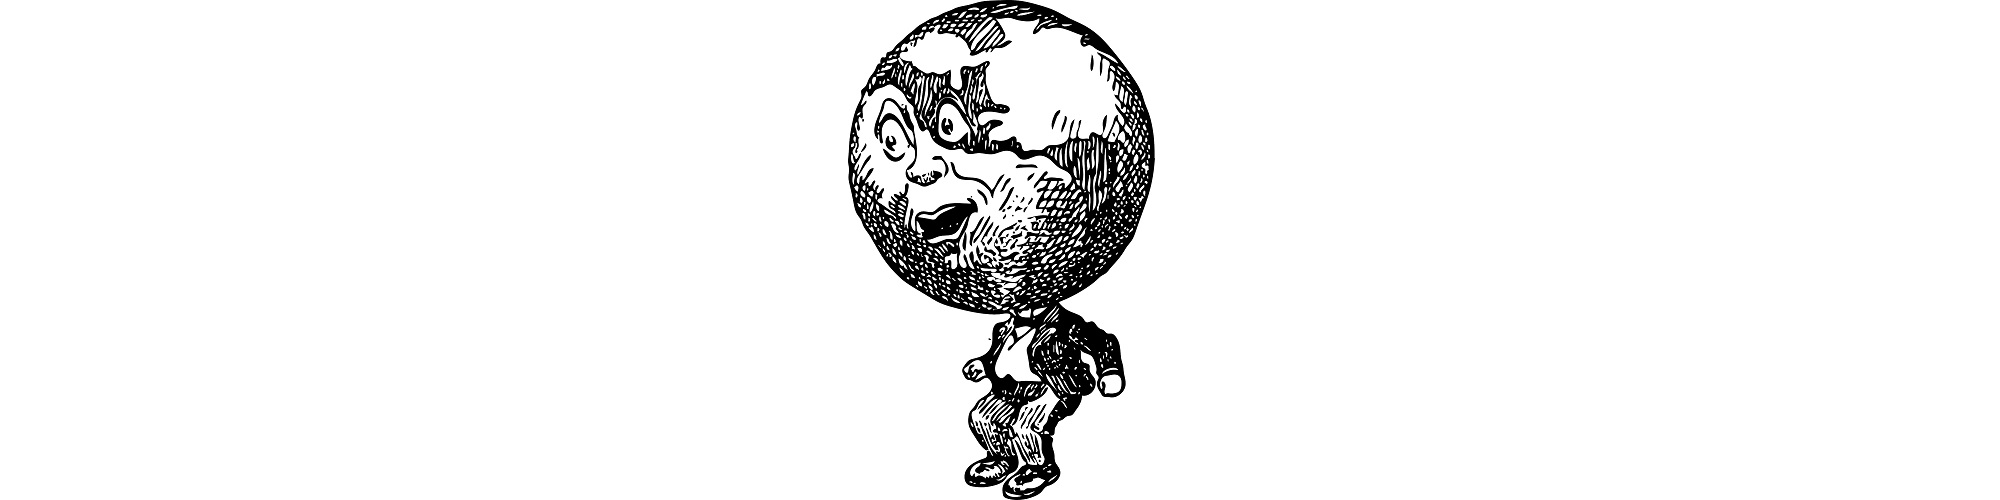 "Globe-headed man illustration - ""The Earth Died Swearing"" microfiction"